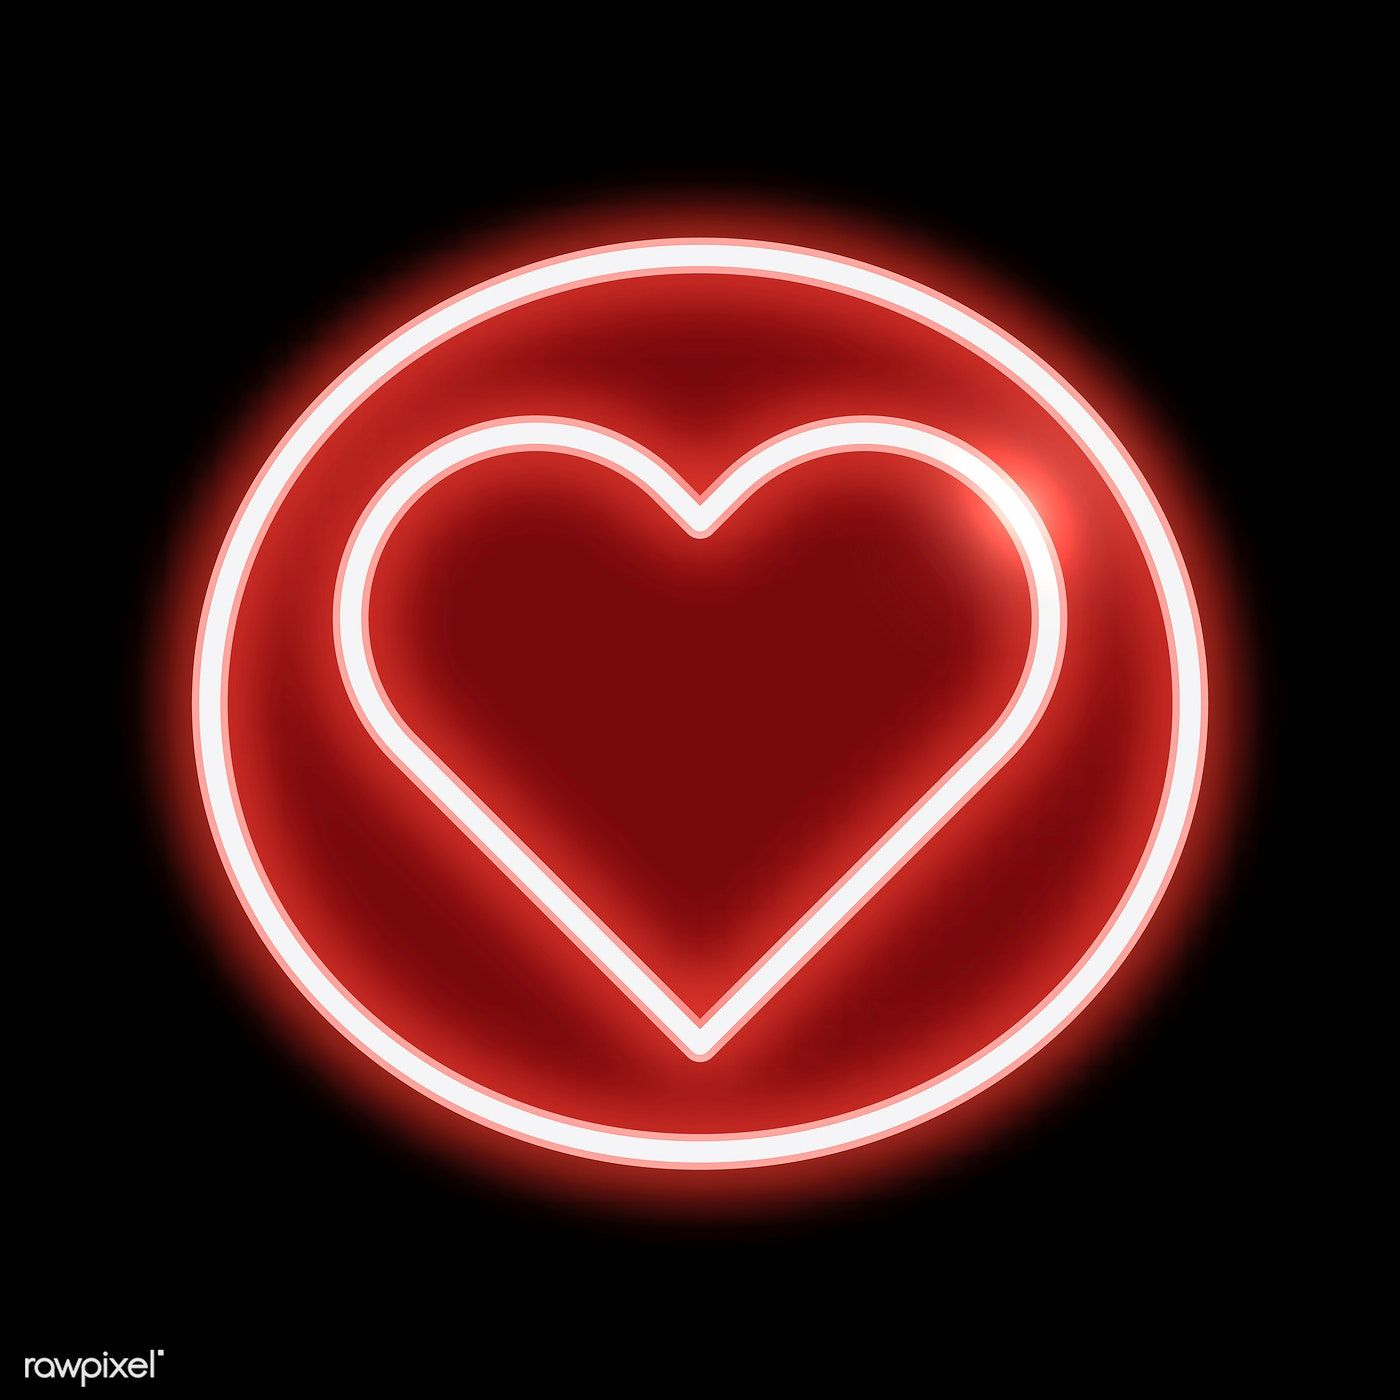 Red heart shaped emoji vector free image by